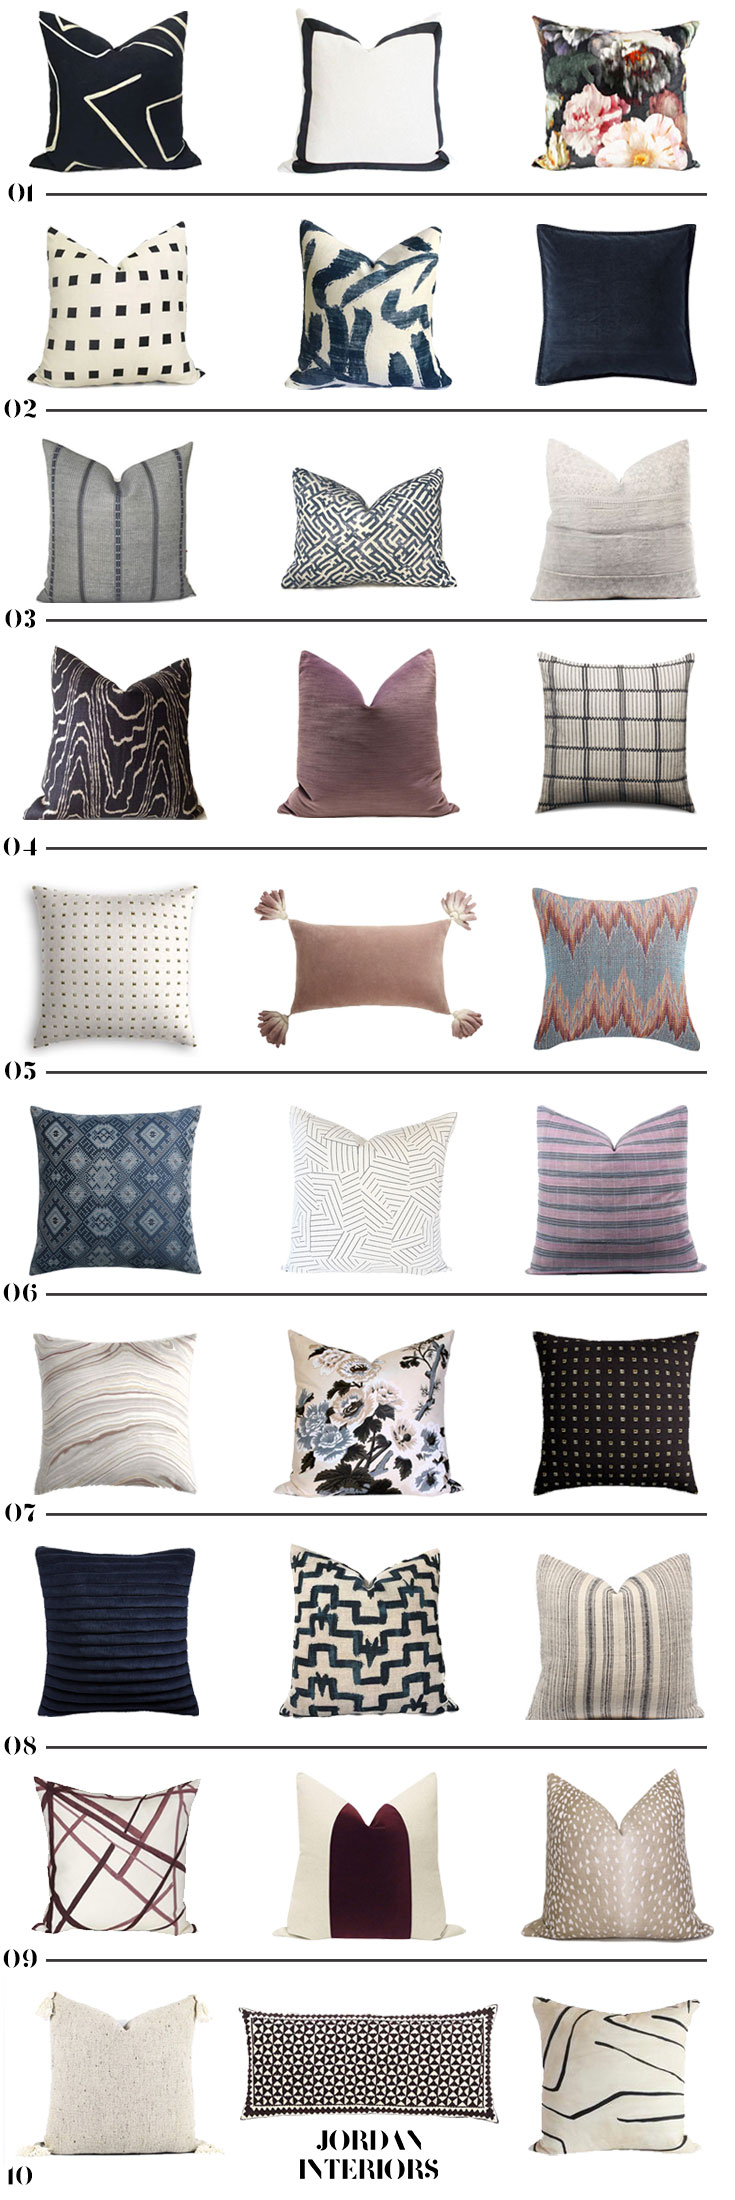 10 Stylish Modern Eclectic Pillow Combos // Jordan Interiors